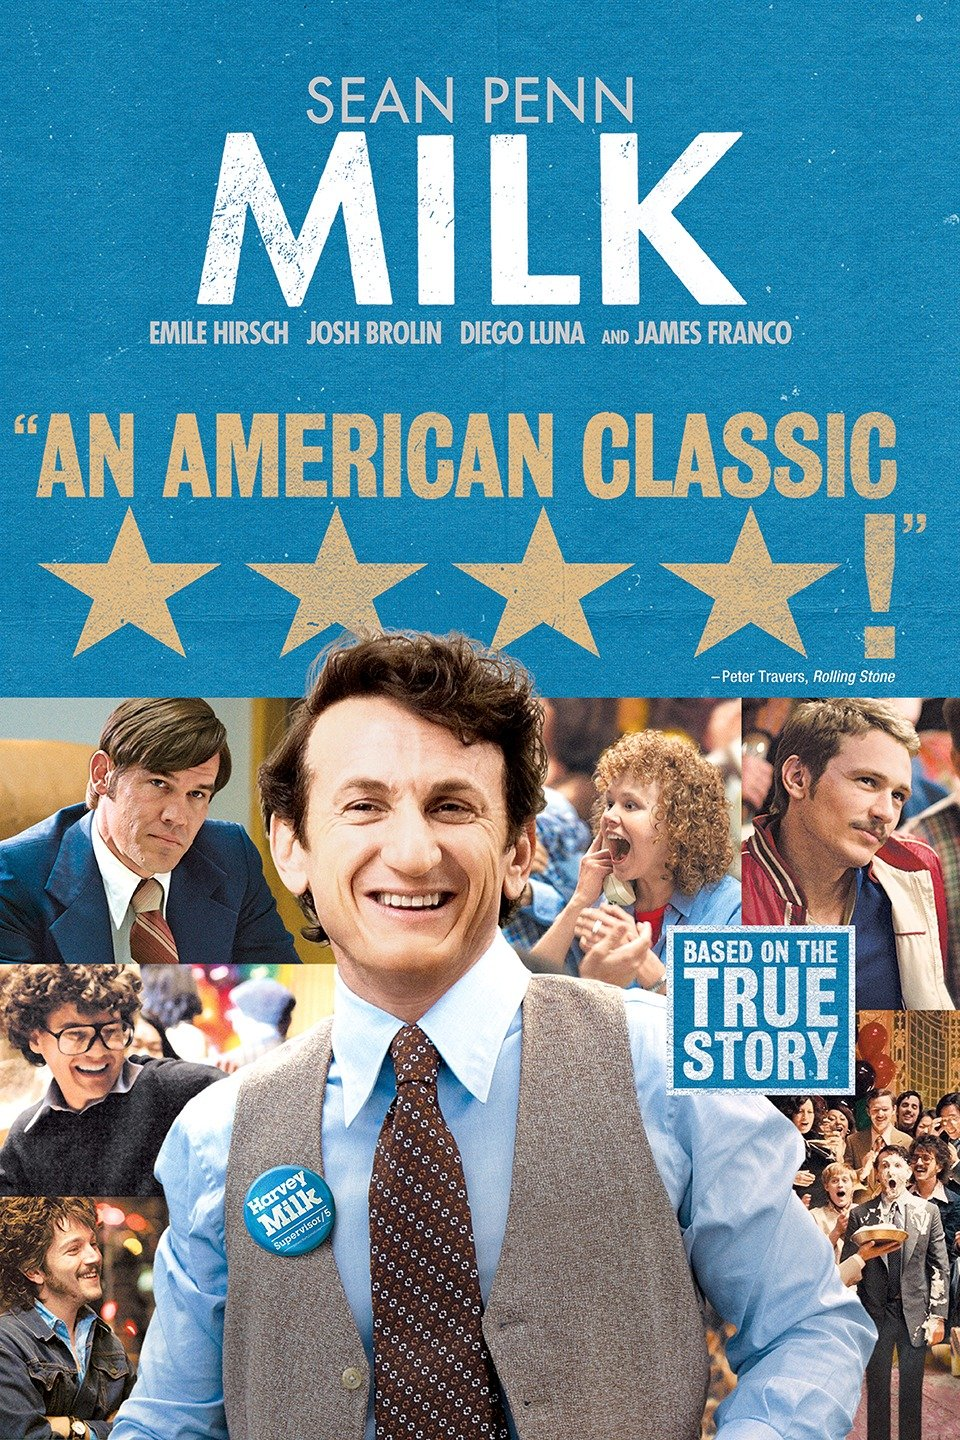 — MILK   In 1972, Harvey Milk (Sean Penn) and his then-lover Scott Smith leave New York for San Francisco, with Milk determined to accomplish something meaningful in his life. Settling in the Castro District, he opens a camera shop and helps transform the area into a mecca for gays and lesbians. In 1977 he becomes the nation's first openly gay man elected to a notable public office when he wins a seat on the Board of Supervisors. The following year, Dan White (Josh Brolin) kills Milk in cold blood.